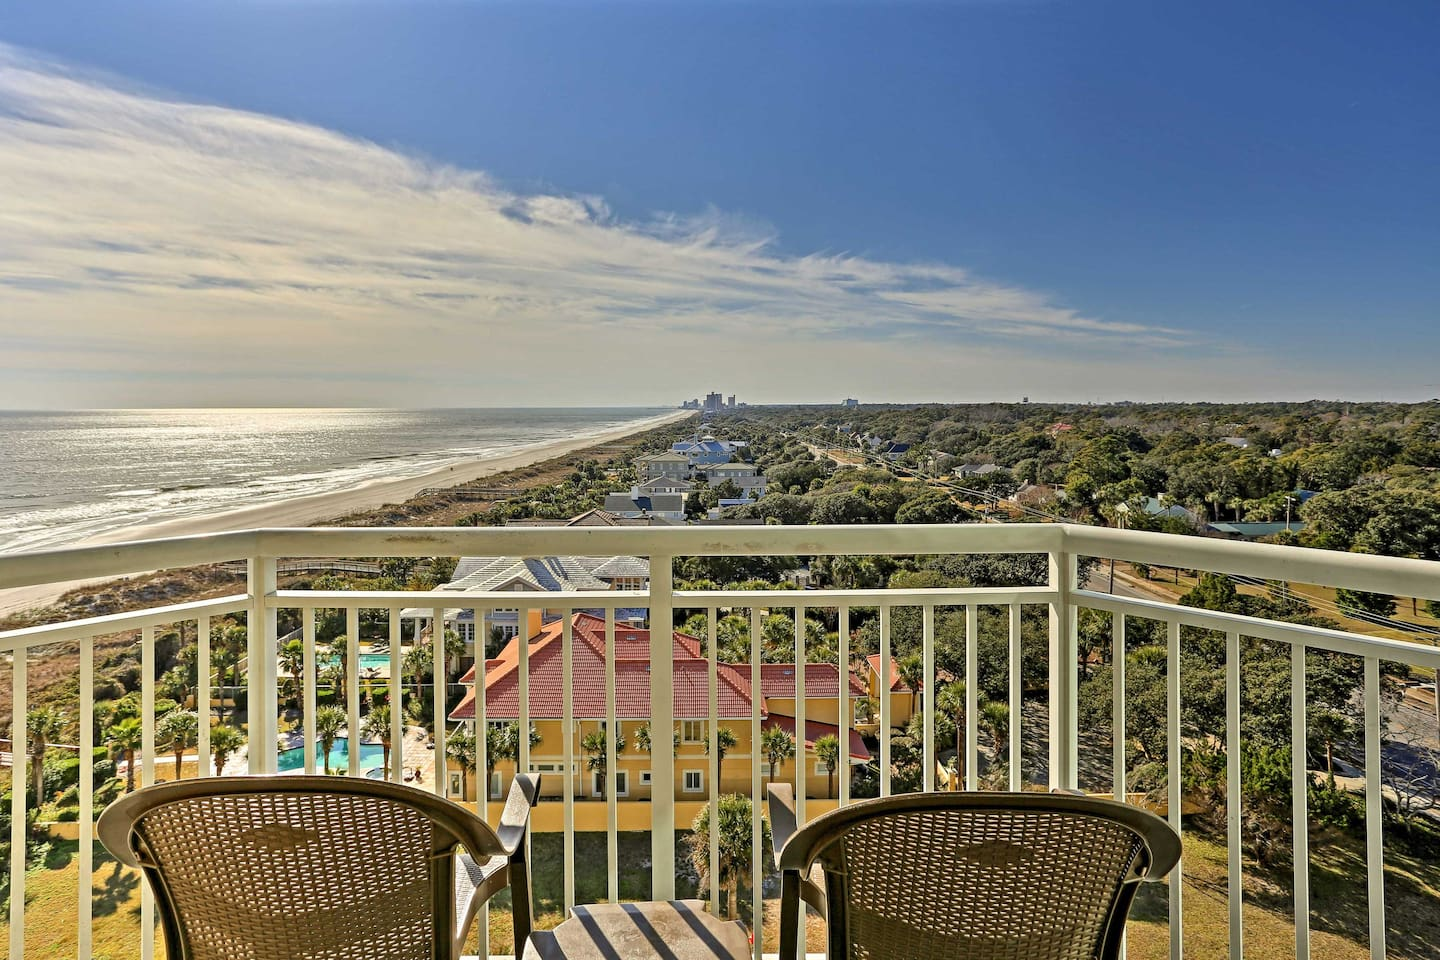 Fall in love with Myrtle Beach at this 2-bedroom, 2-bath vacation rental condo!